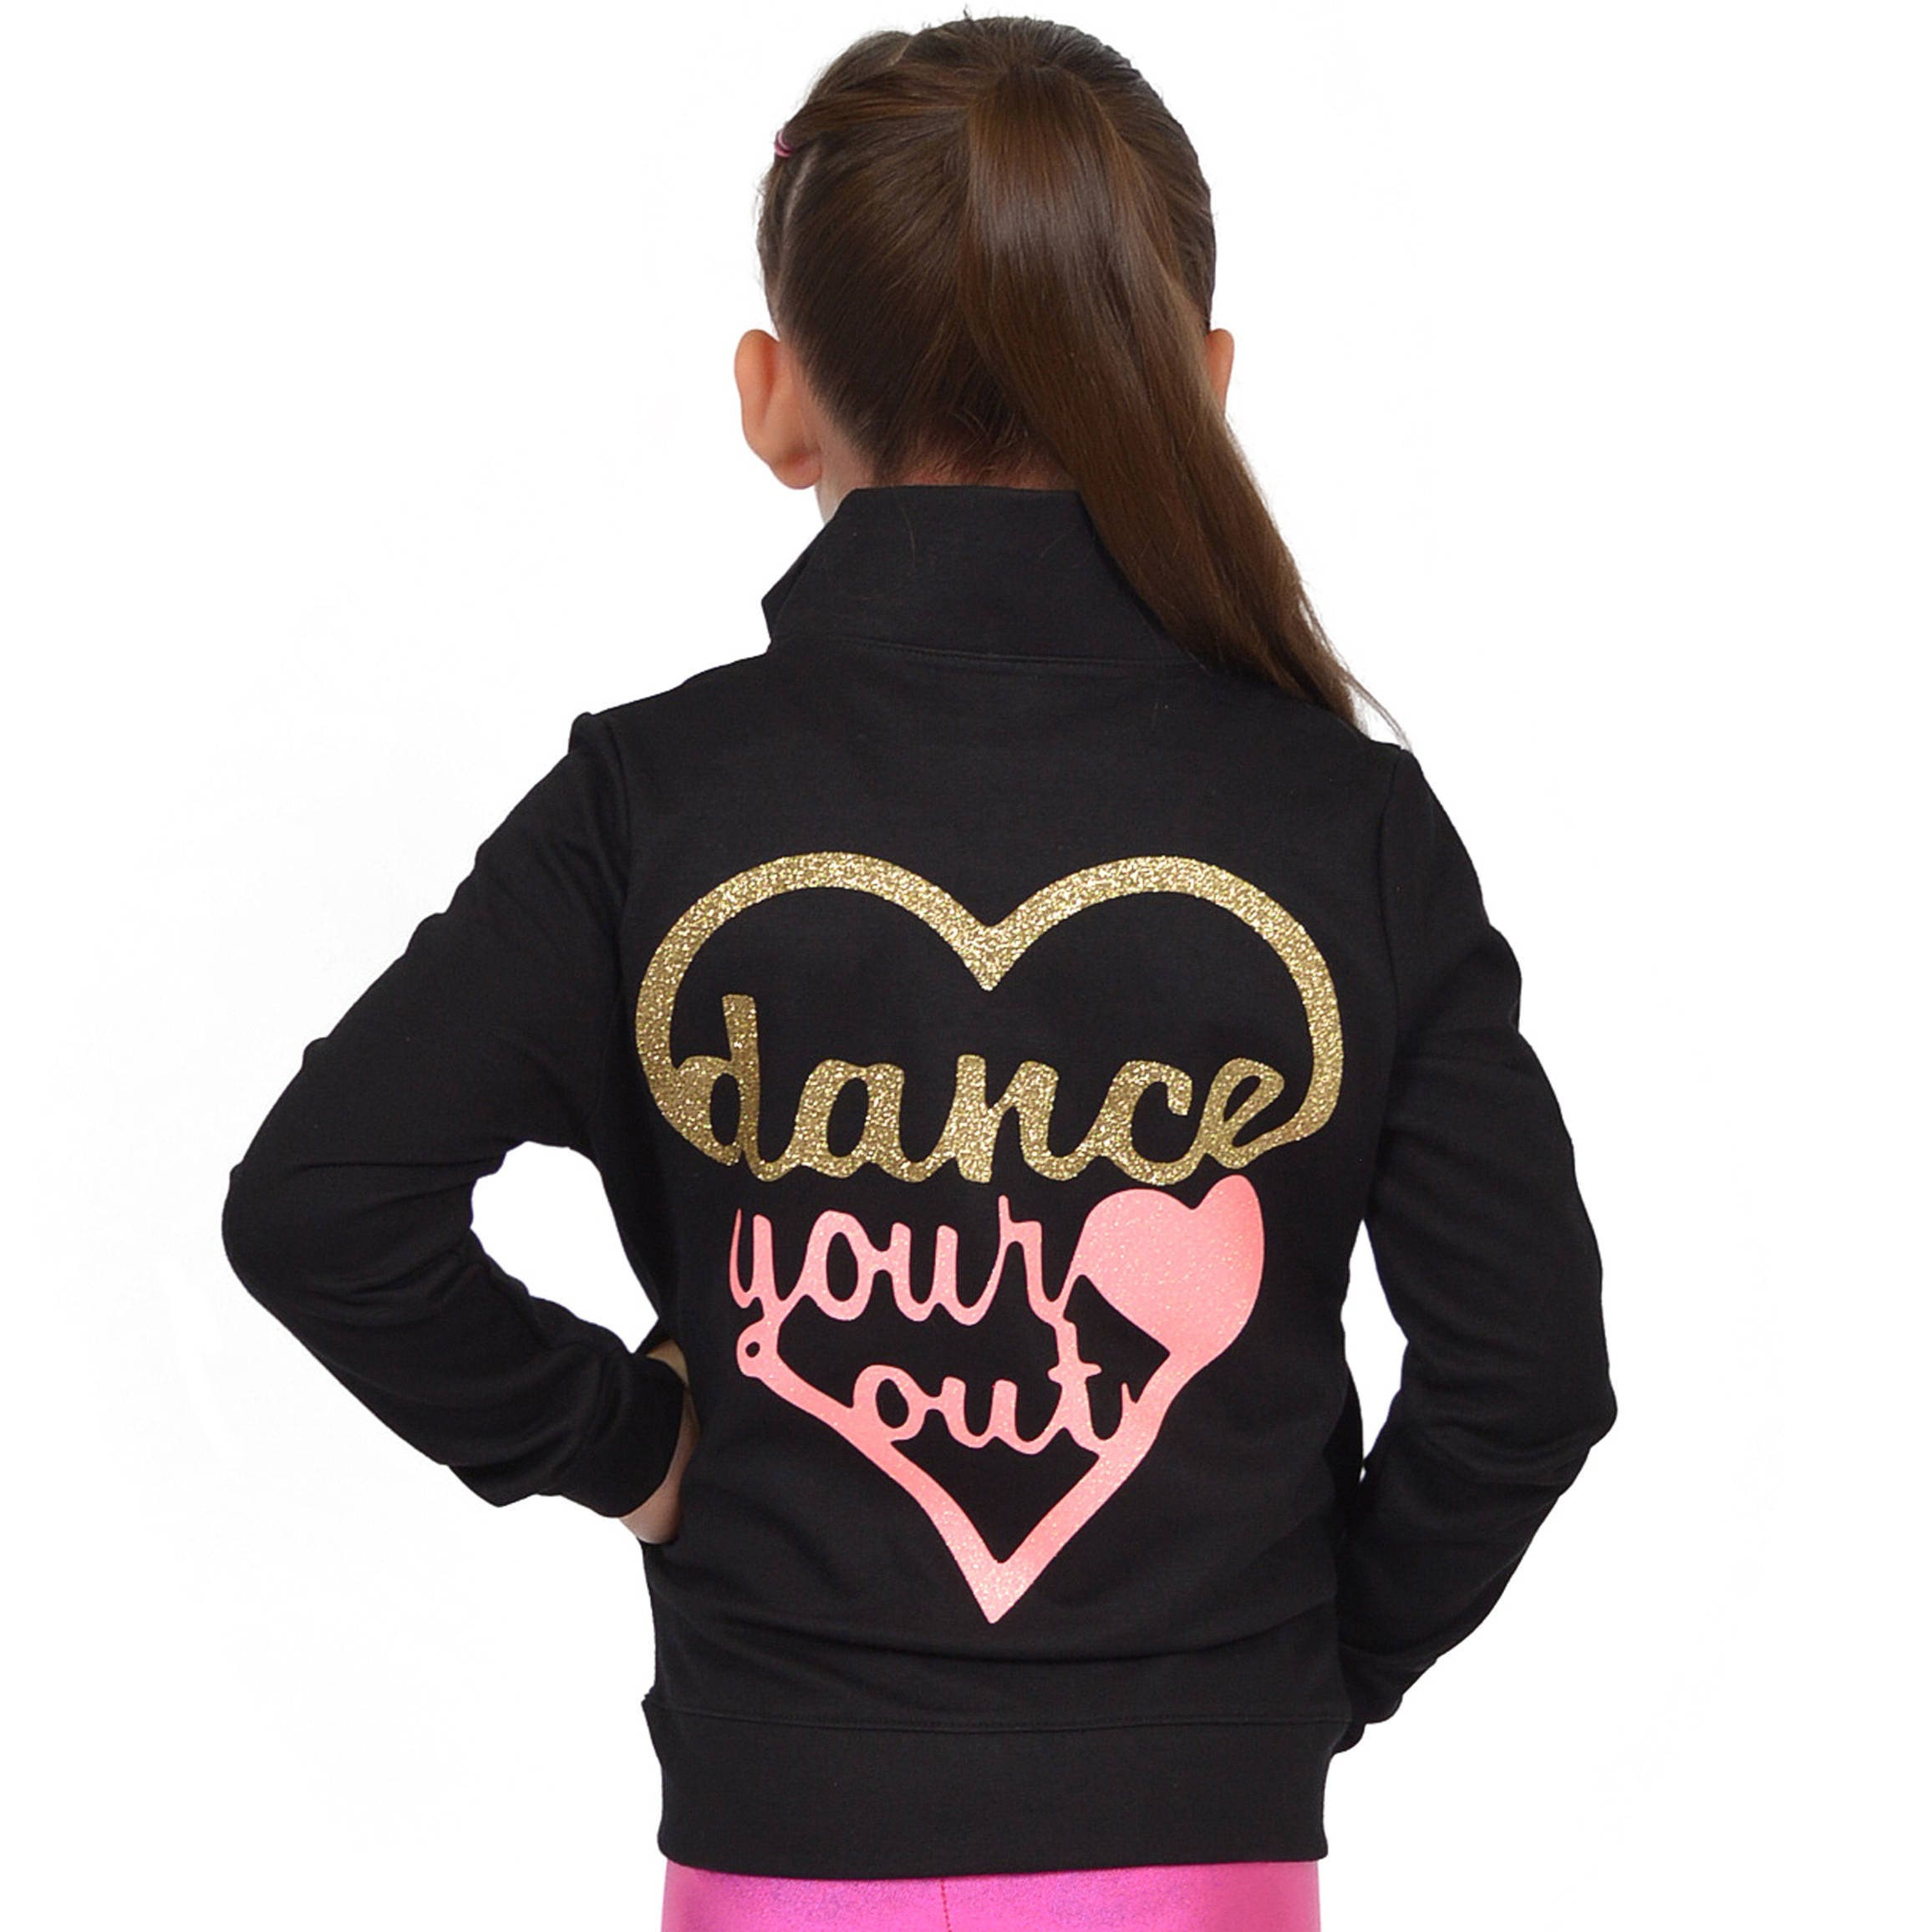 18583cb248d5 Girl s GLITTER Dance Your Heart Out Warm Up Jacket